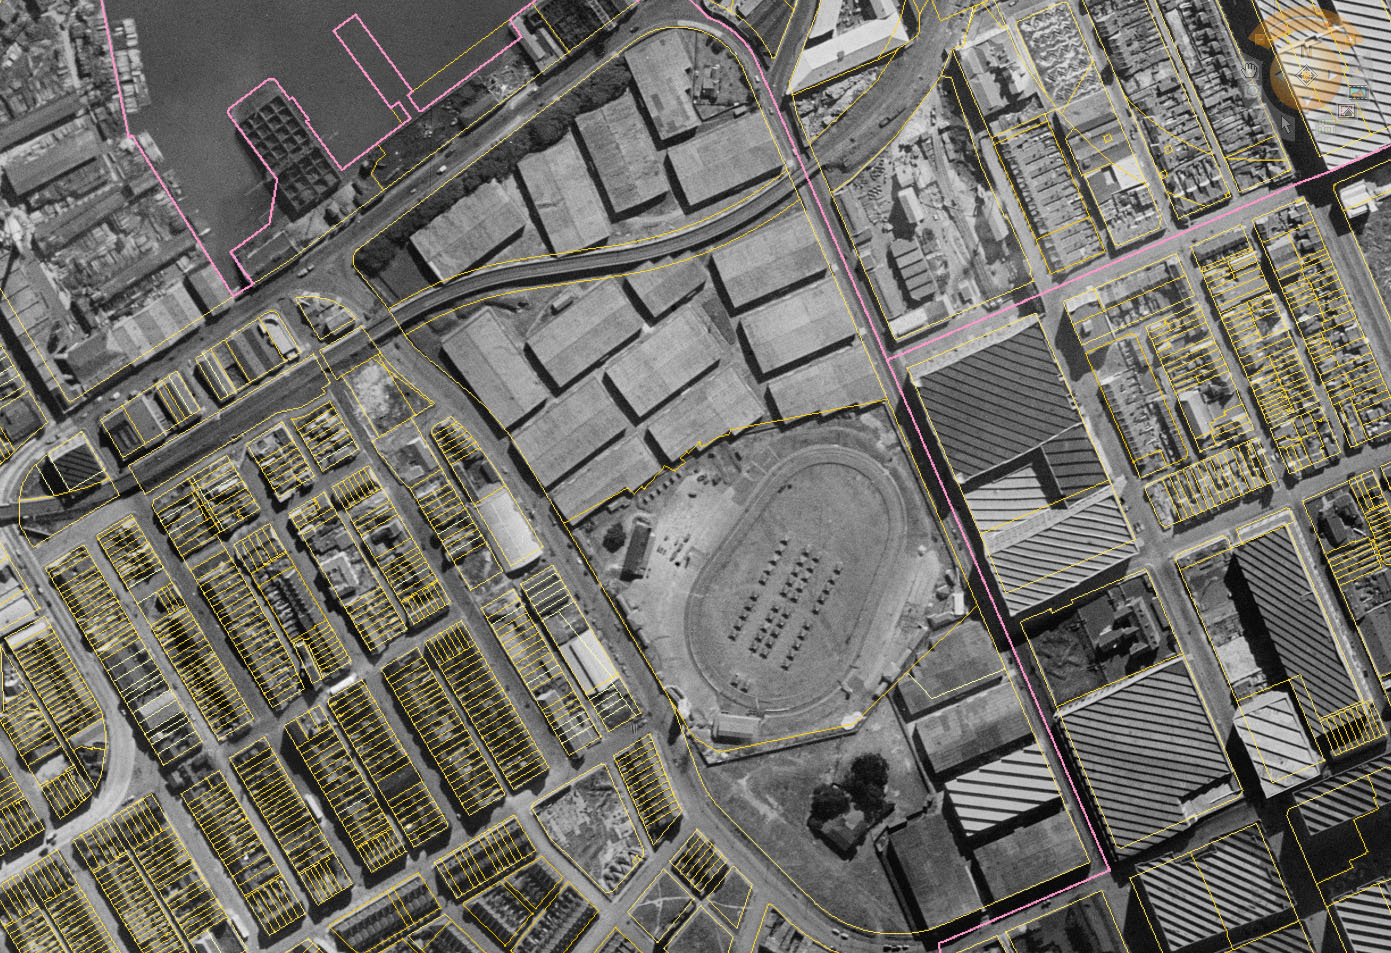 1943 aerial view of Wentworth Park